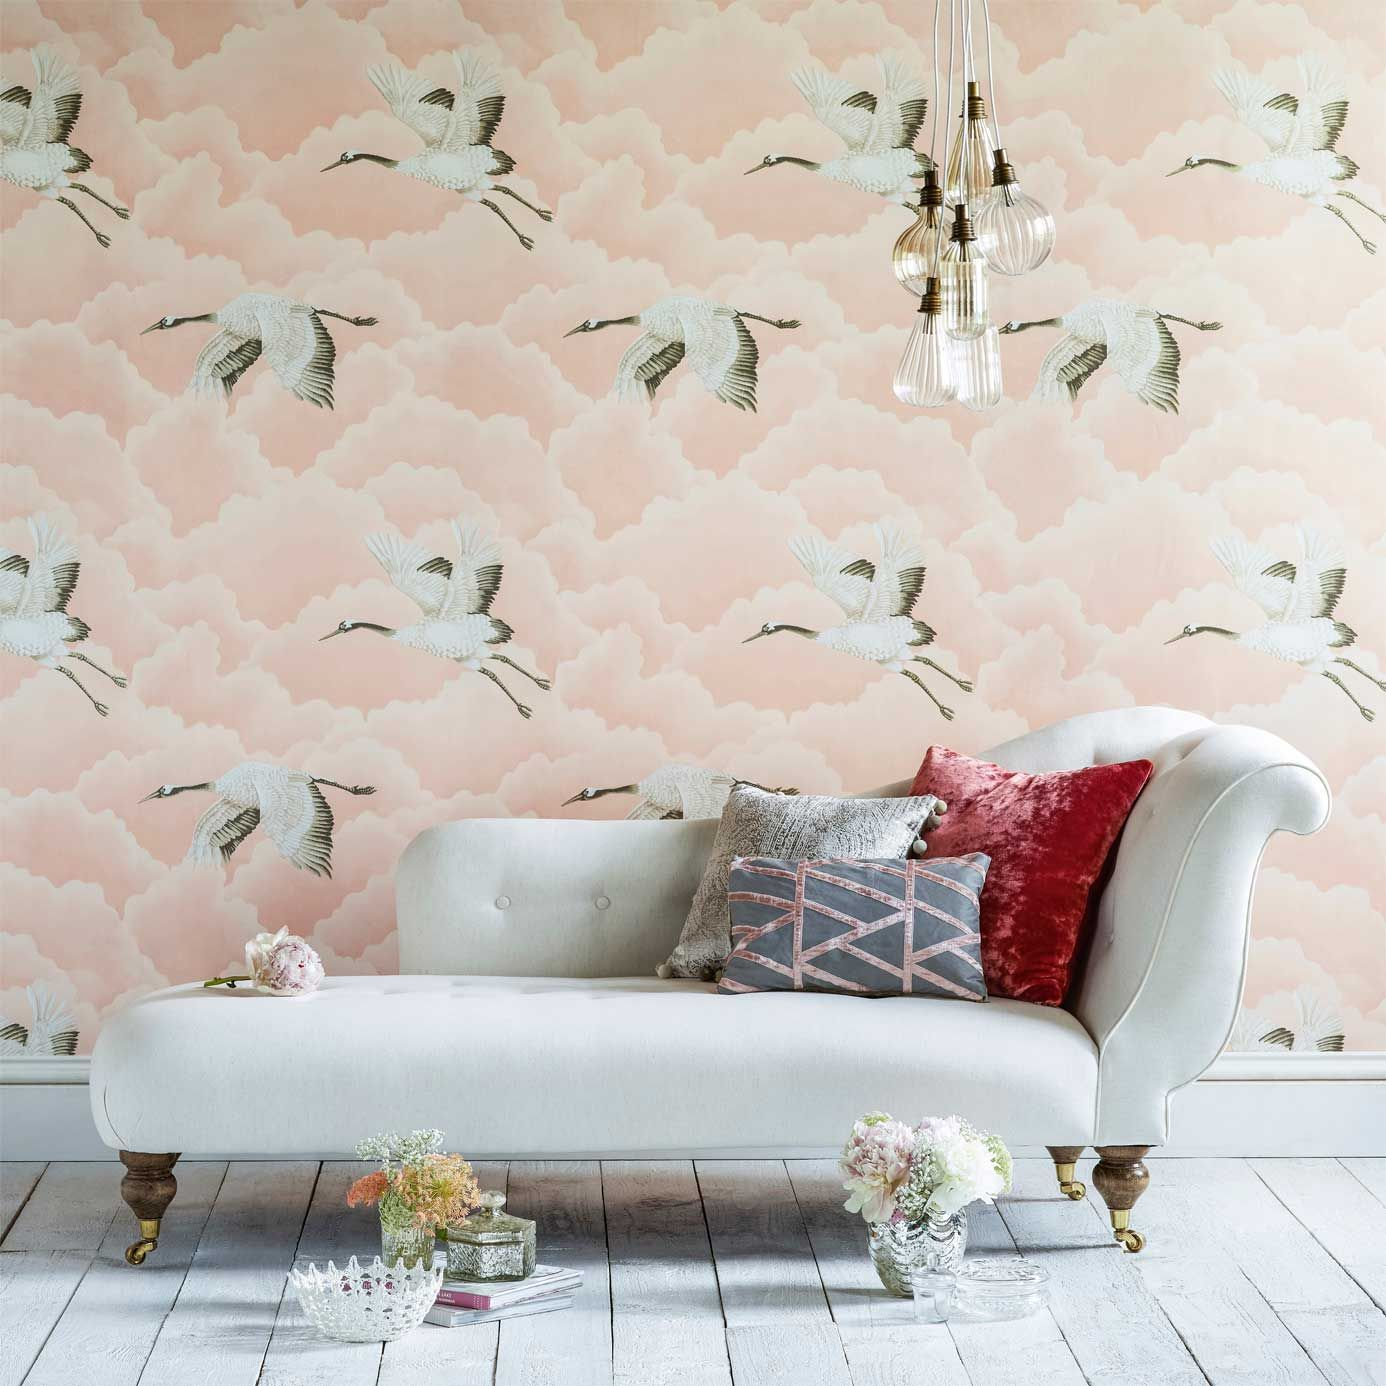 Products harlequin designer fabrics and wallpapers paradise - Products Harlequin Designer Fabrics And Wallpapers Cranes In Flight Hgat111232